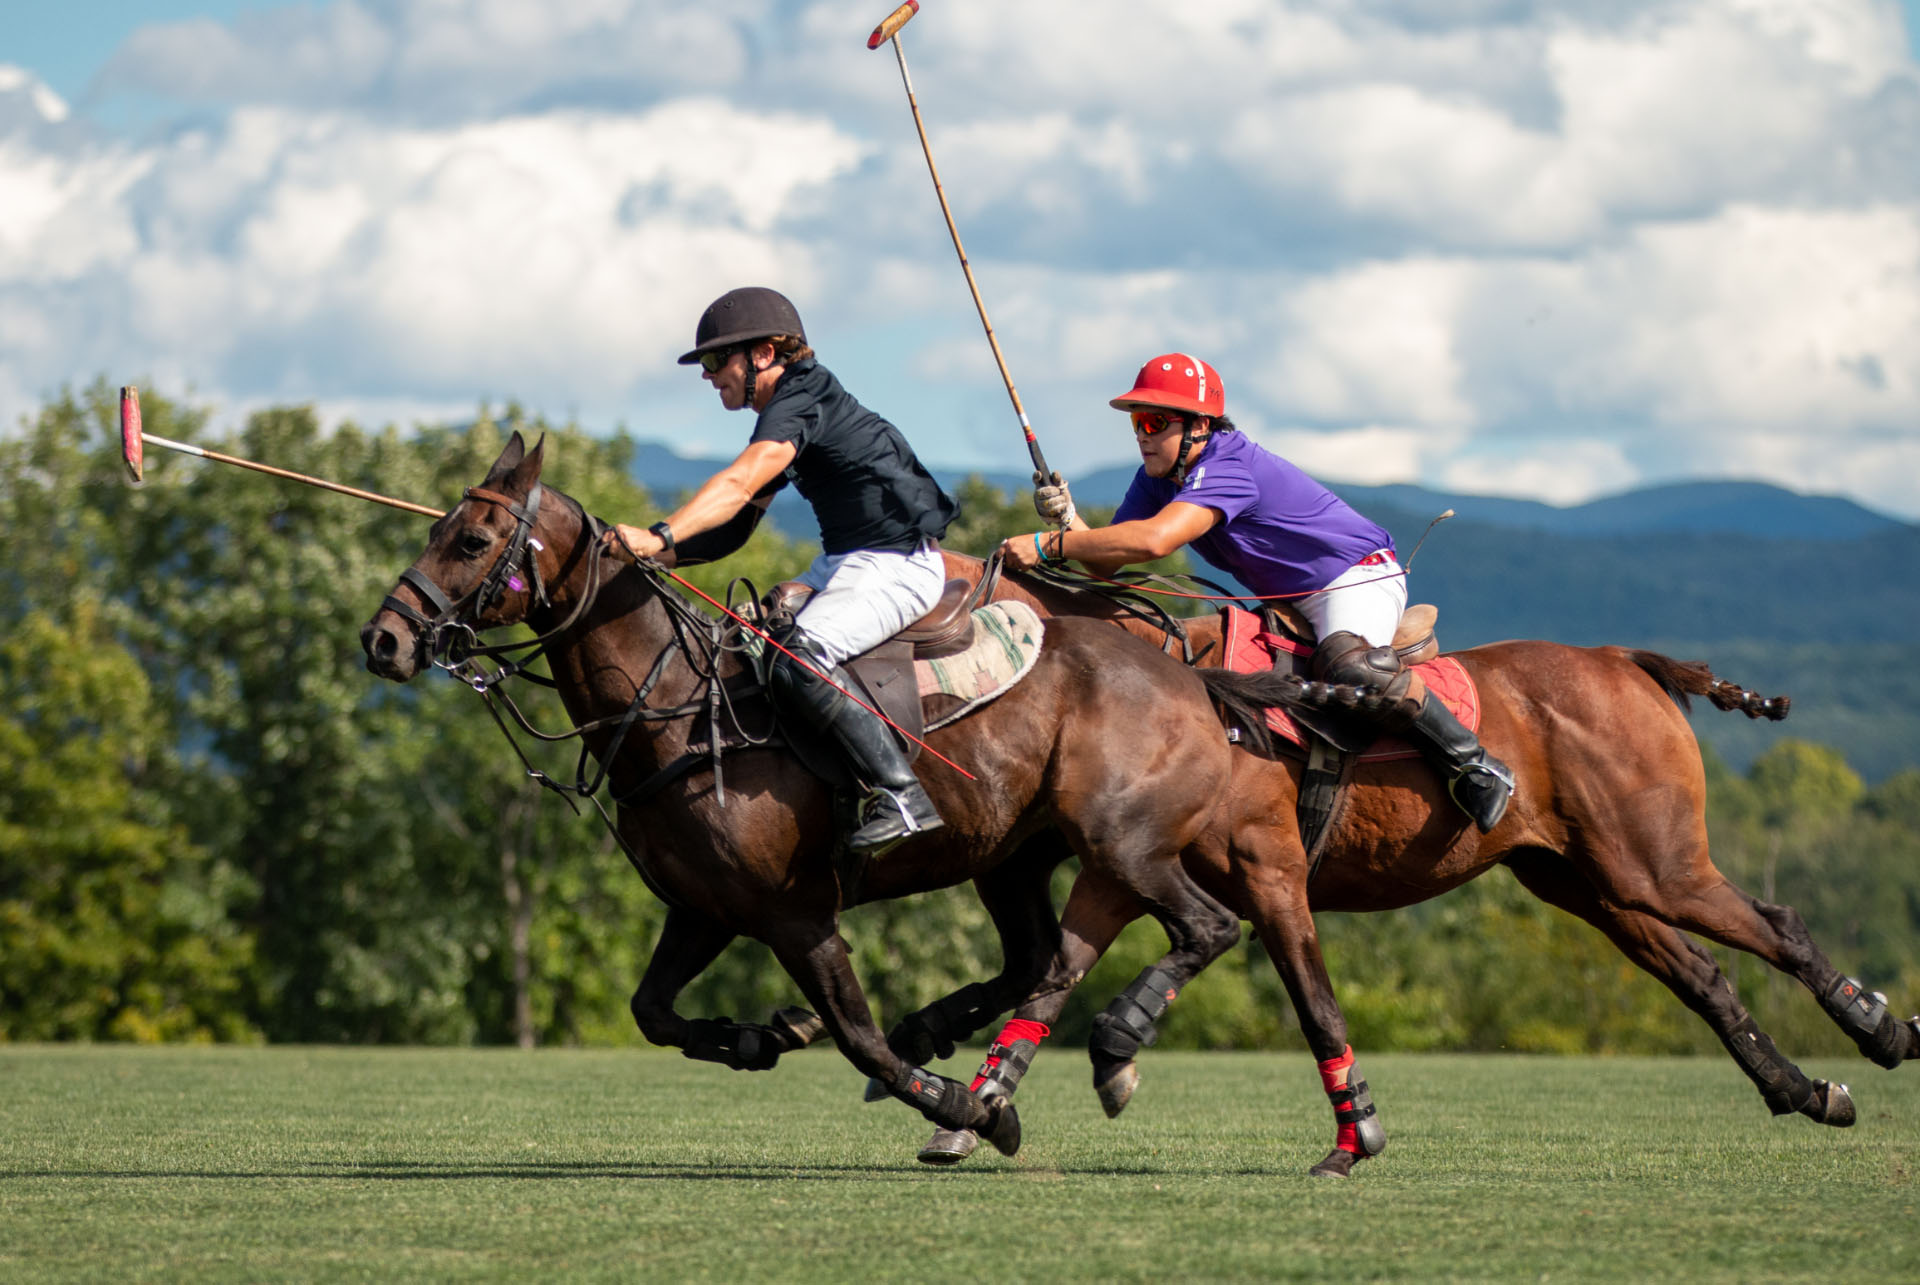 Mario Dino DiSalvo, a polo player from Argentina in conversation with La Polo